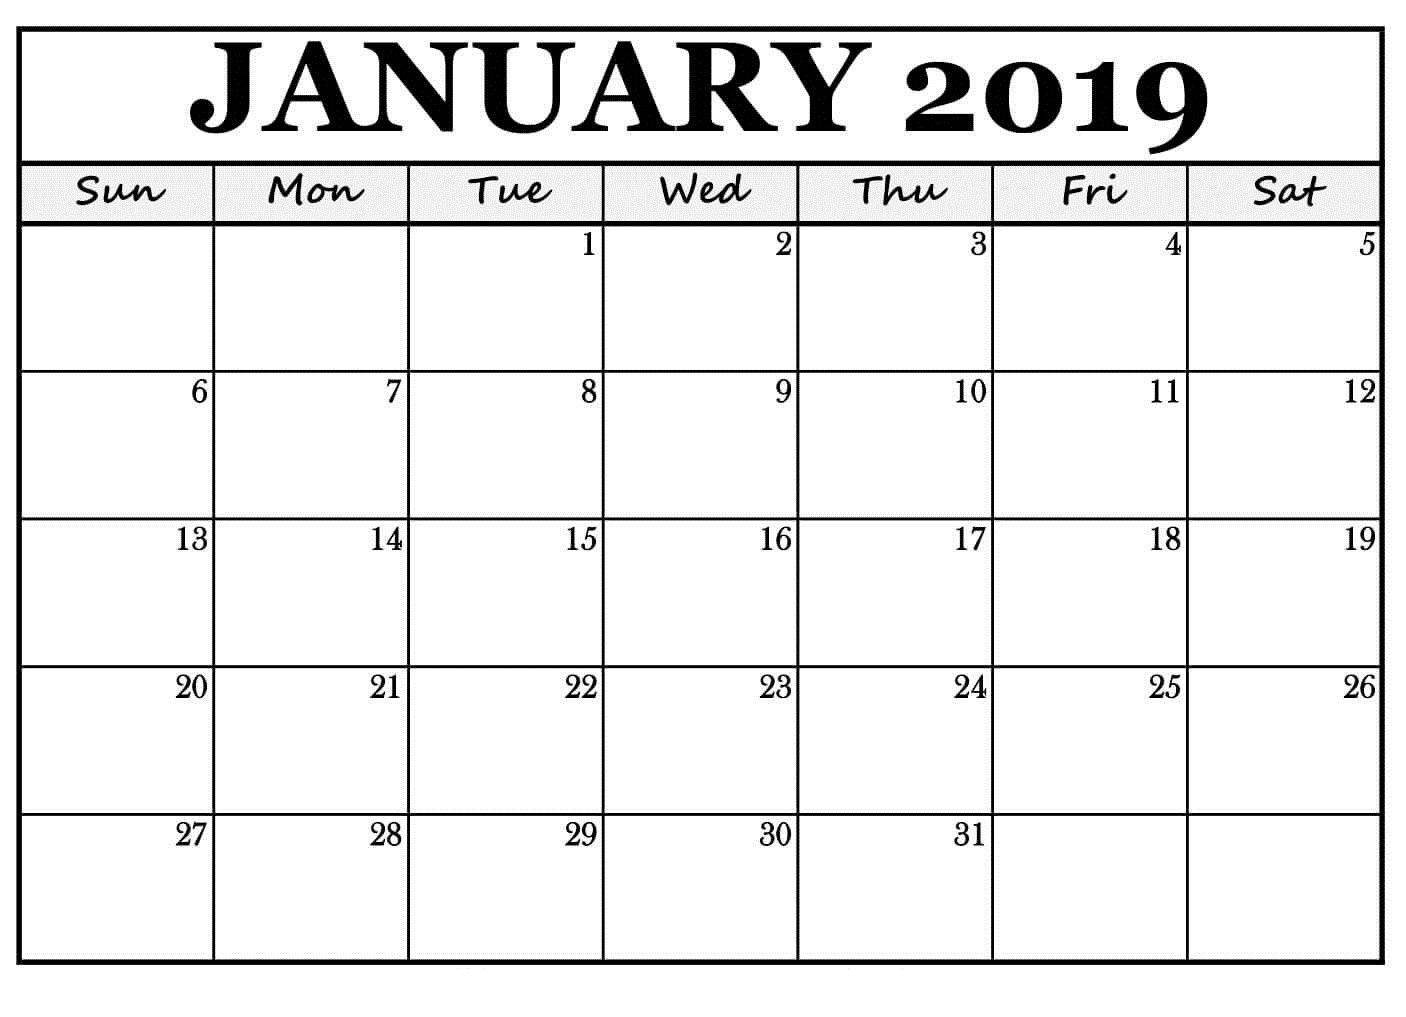 January 2019 Calendar Reminders Free Template   January 2019 inside Free Printable September Blank Calendars With Christian Themes